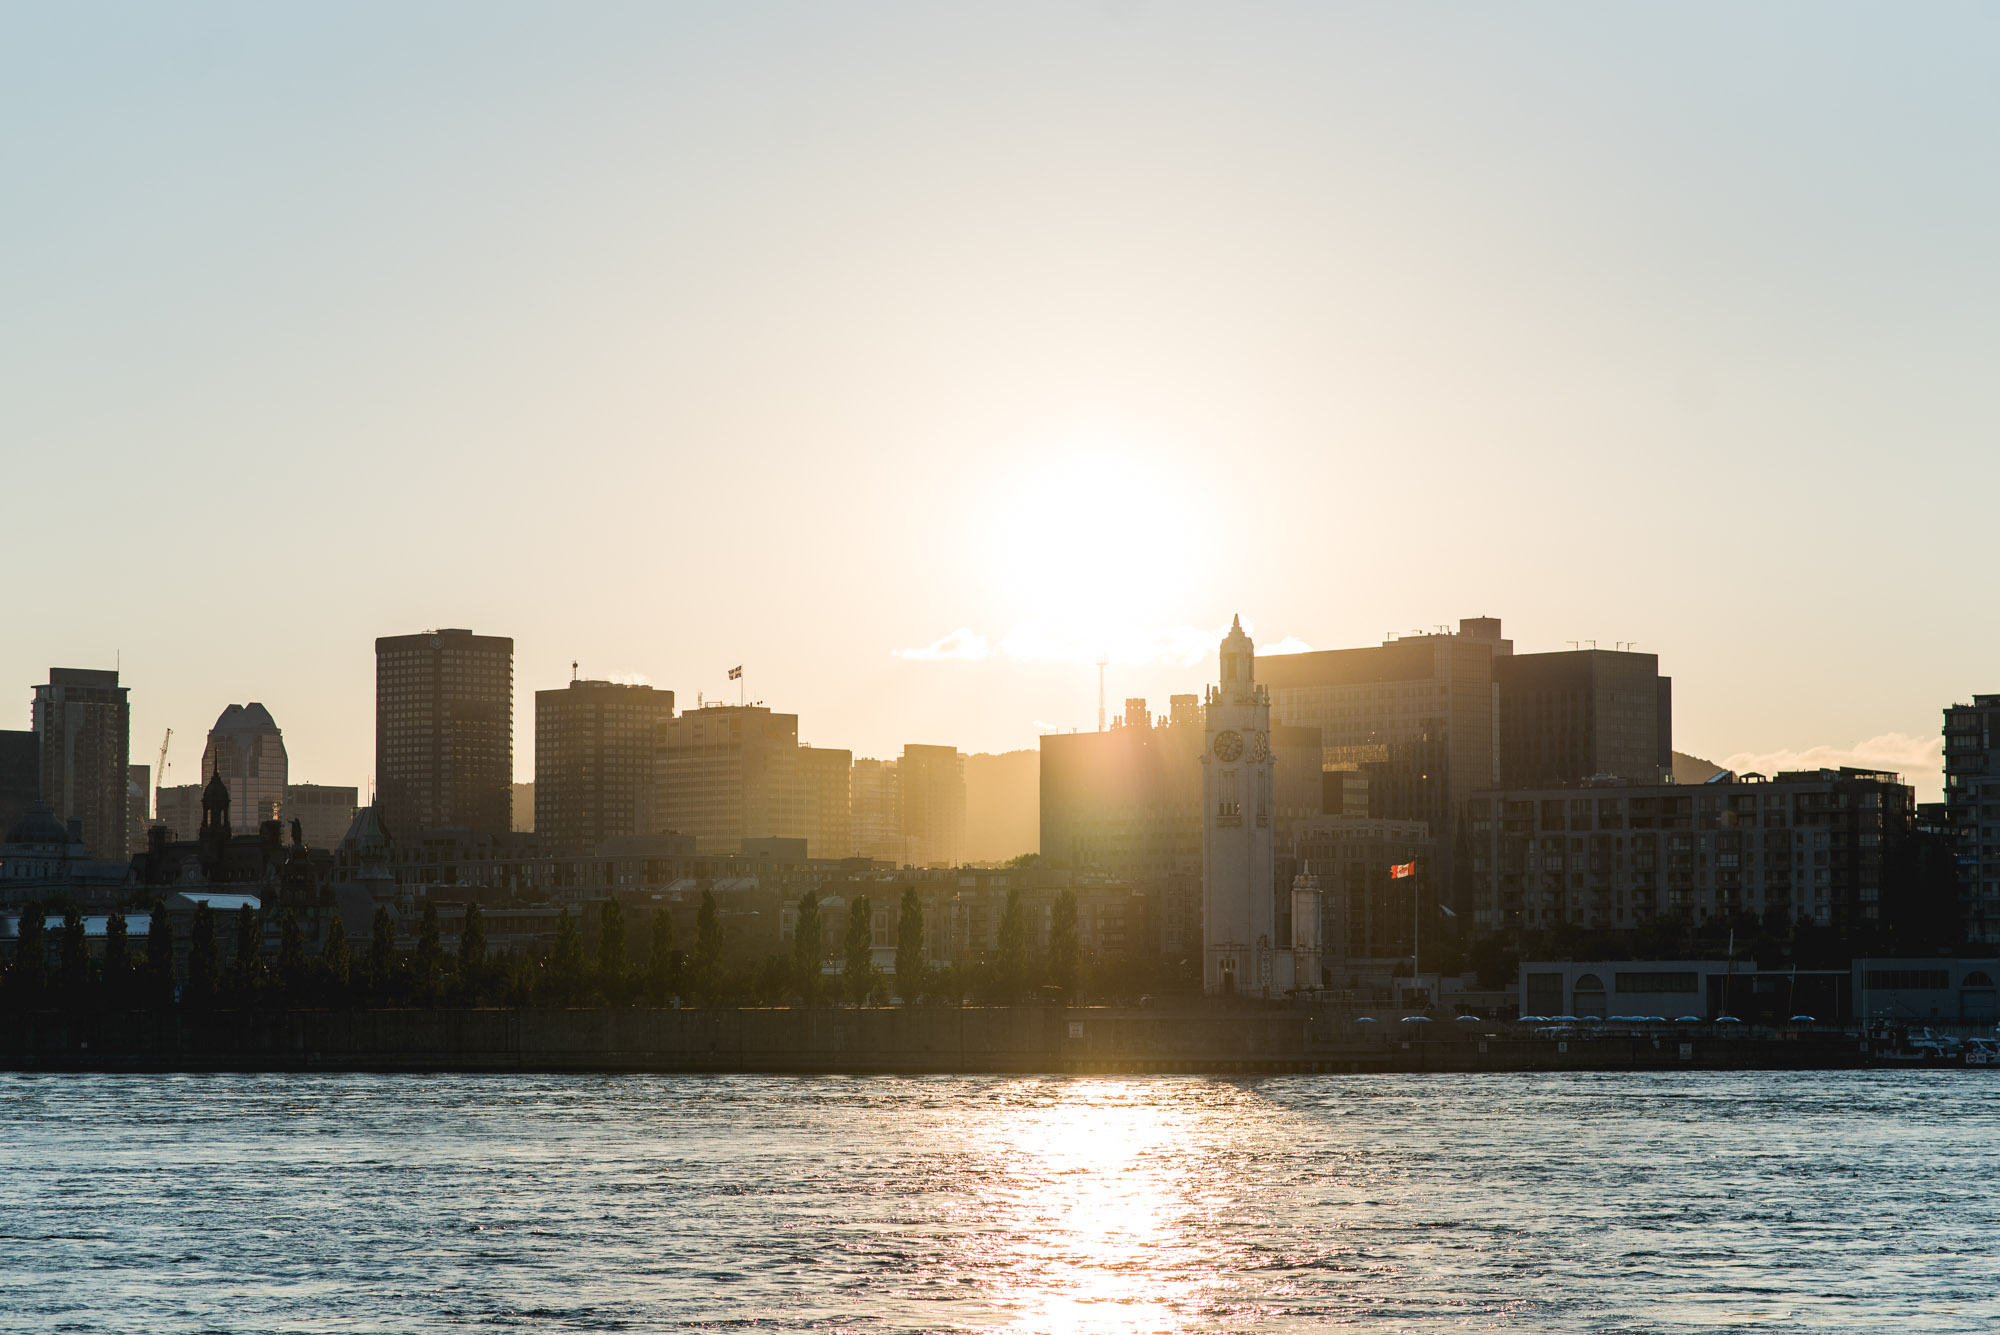 Jeff On The Road - How To Find An Apartment in Montreal - Mtl skyline from Parc Jean-Drapeau - All photos are under Copyright  © 2017 Jeff Frenette Photography / dezjeff. To use the photos, please contact me at dezjeff@me.com.